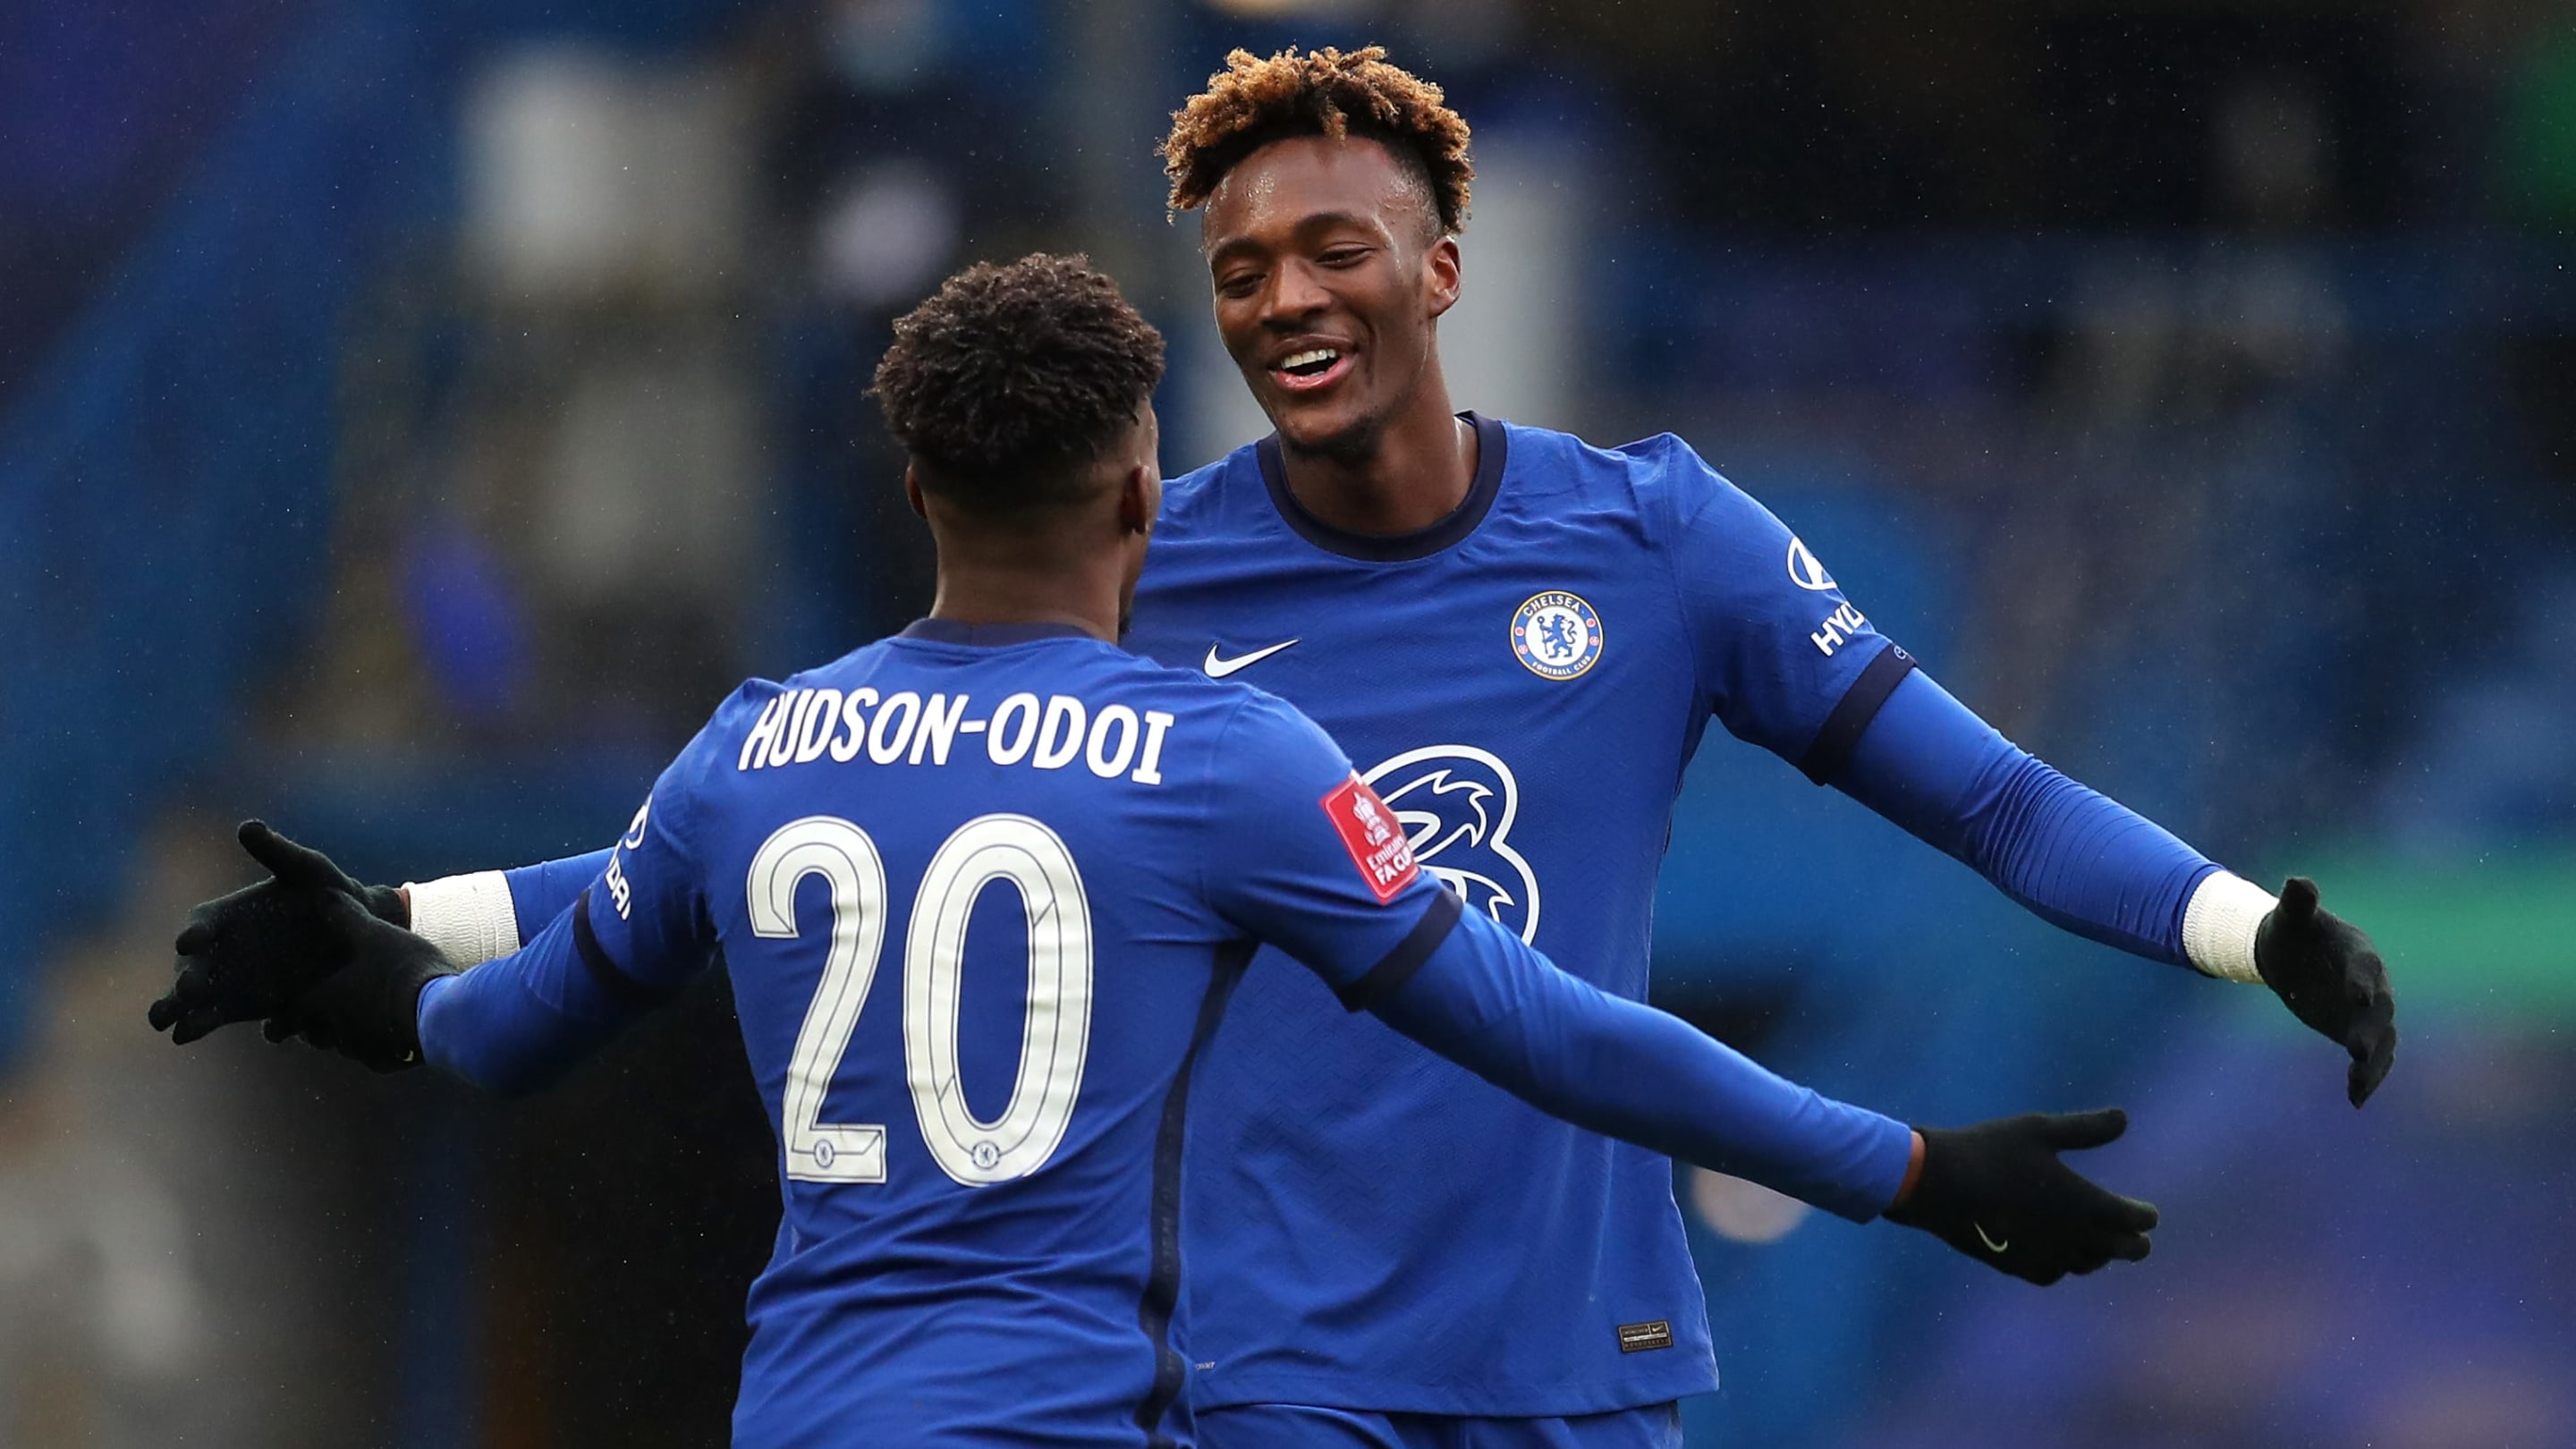 Chelsea 3-1 Luton: Player ratings as Tammy Abraham hat-trick fires Blues into 5th round thumbnail